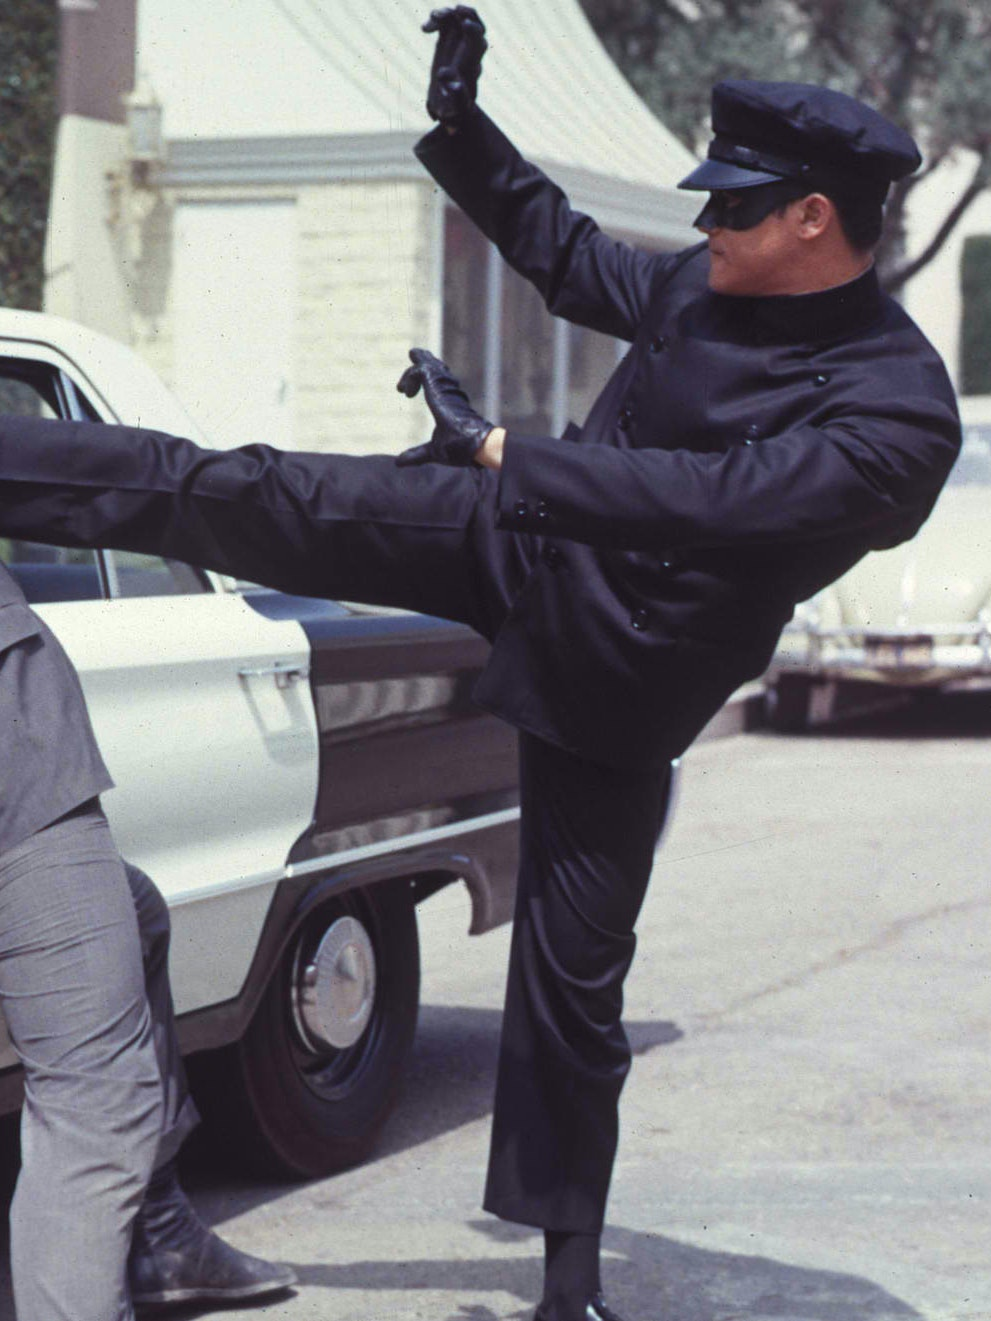 Kato in 'The Green Hornet'